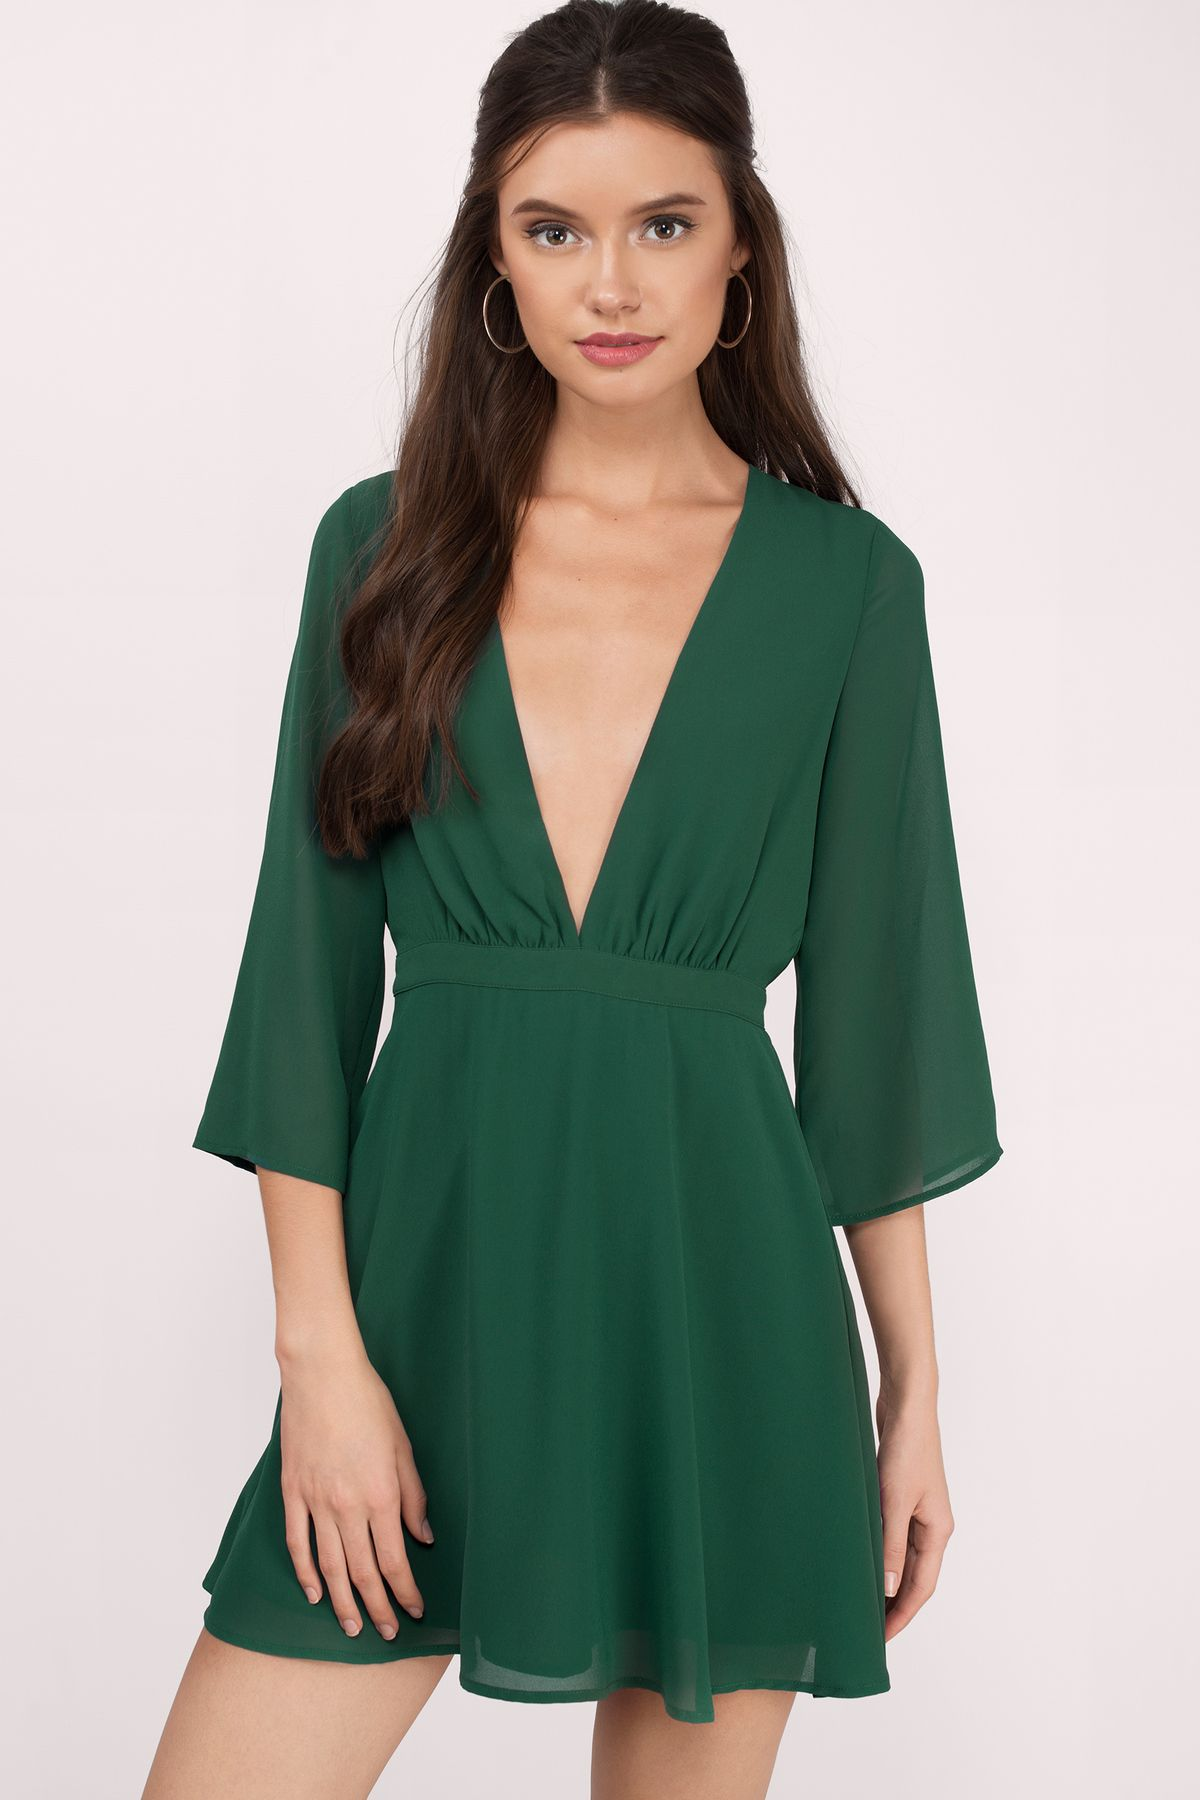 Green dress night out  The Take It Slow Skater Dress features a plunging neckline and